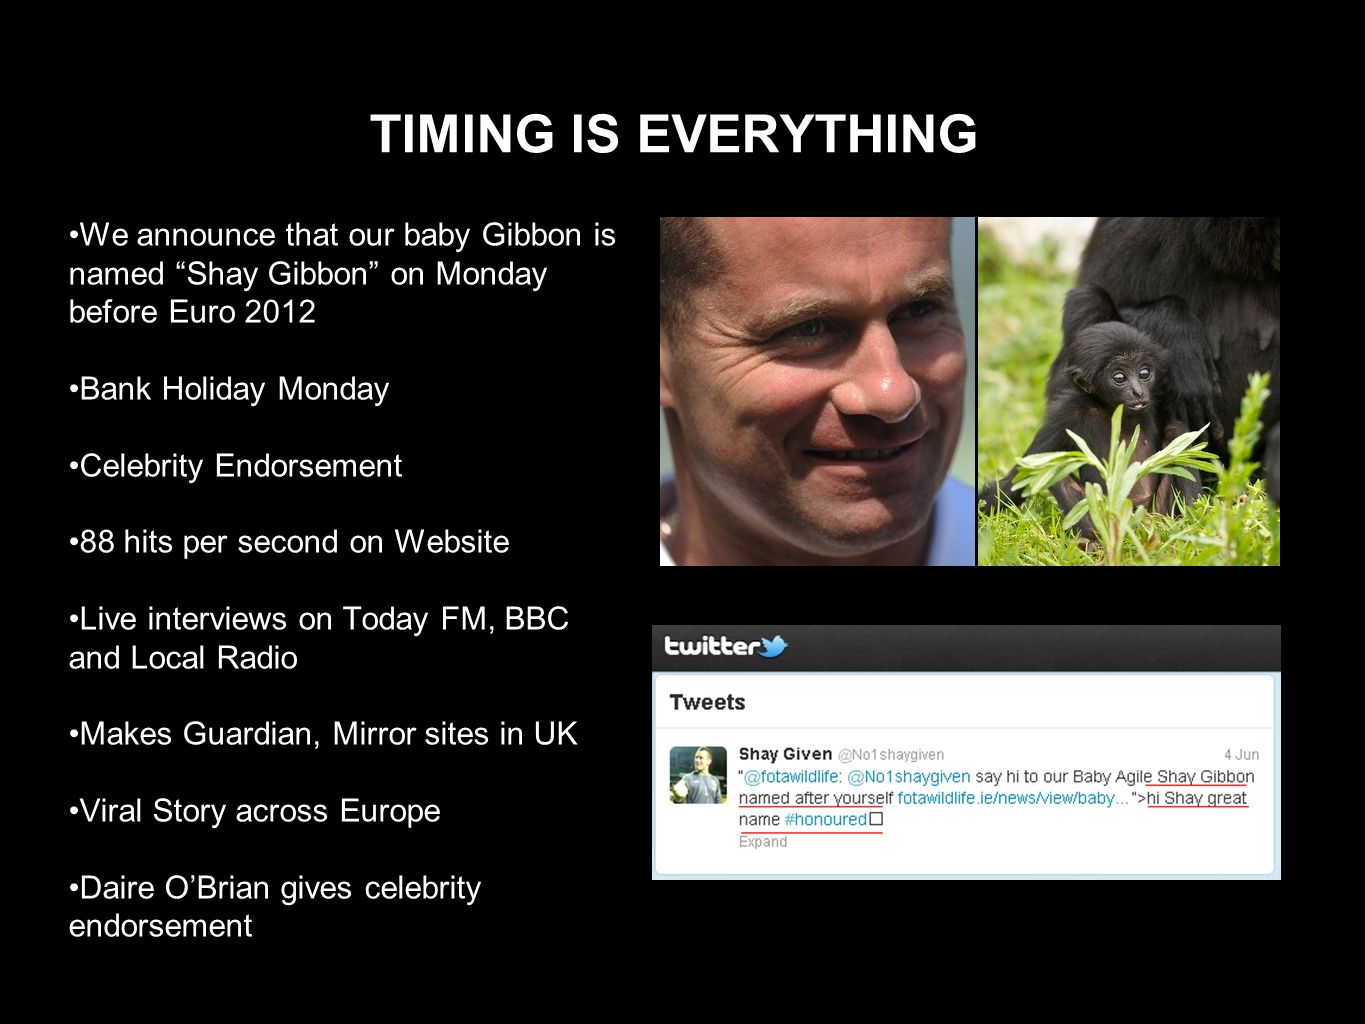 TIMING IS EVERYTHING We announce that our baby Gibbon is named Shay Gibbon on Monday before Euro 2012 Bank Holiday Monday Celebrity Endorsement 88 hits per second on Website Live interviews on Today FM, BBC and Local Radio Makes Guardian, Mirror sites in UK Viral Story across Europe Daire OBrian gives celebrity endorsement